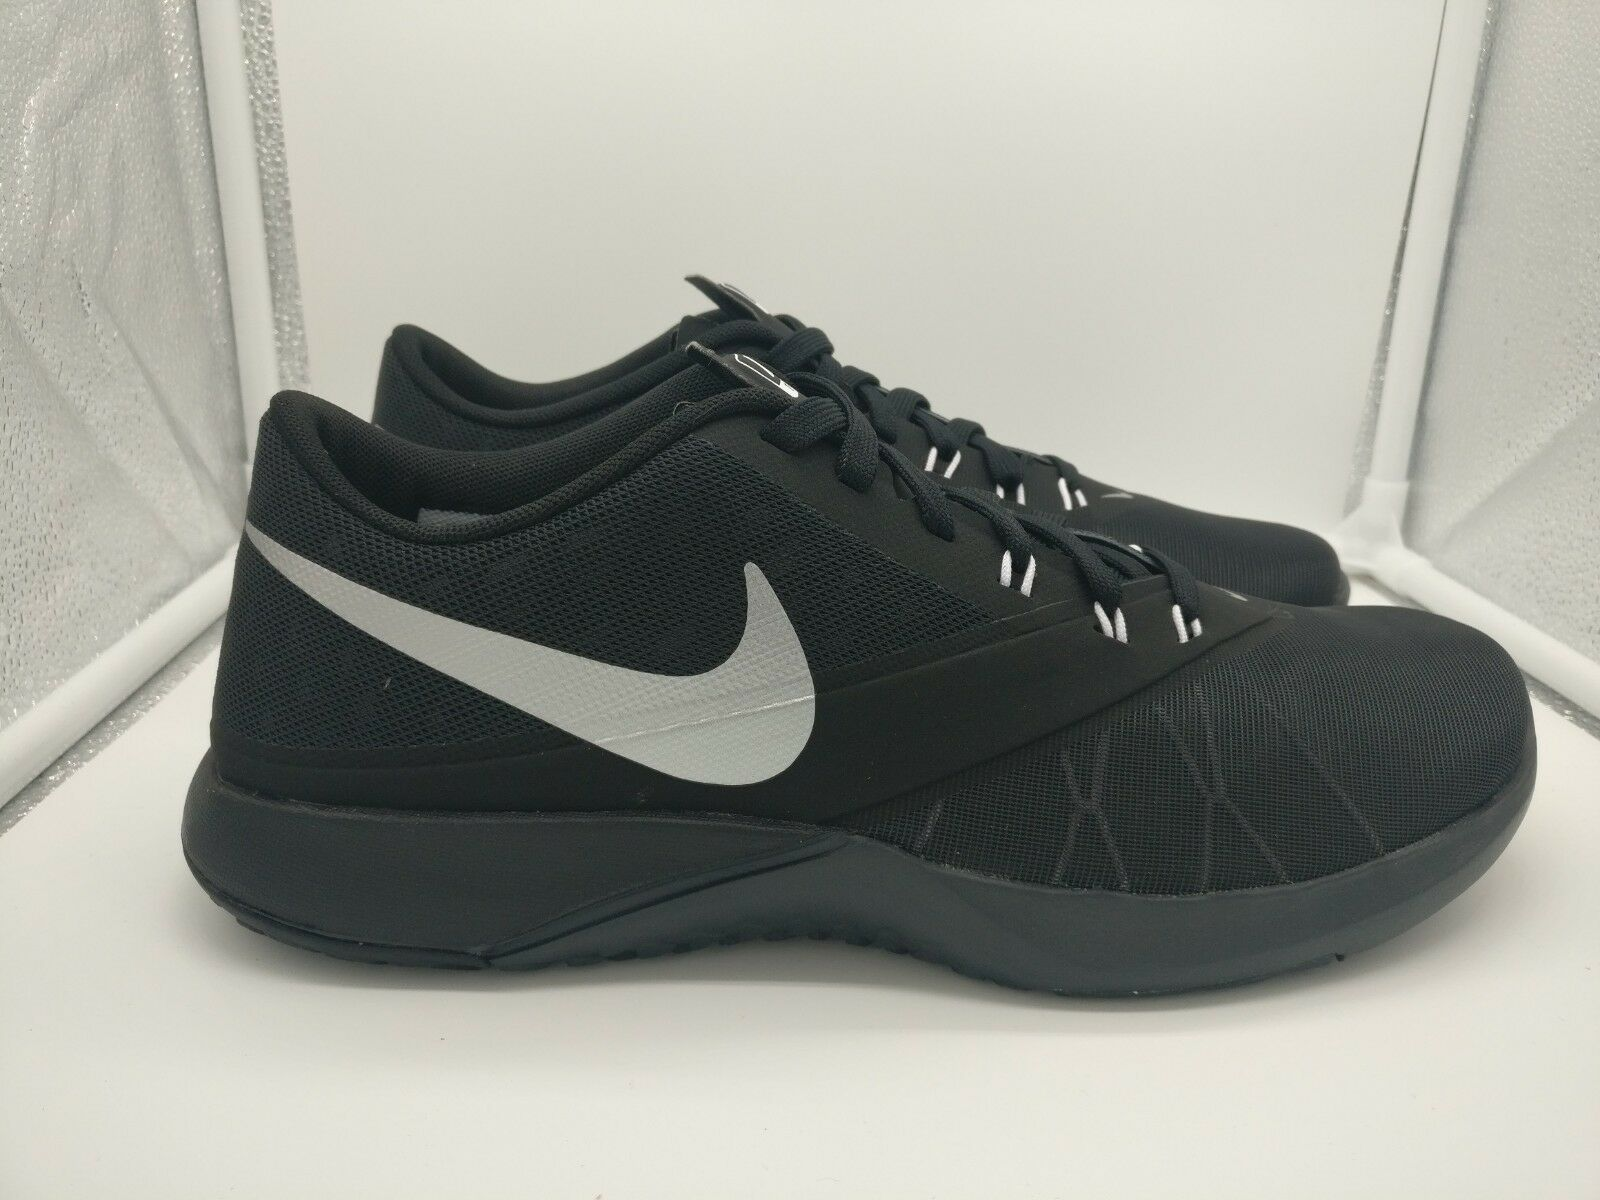 Nike FS Lite Trainer Silver 4 UK 11 Anthracite Metallic Silver Trainer 844794-001 4e13c2